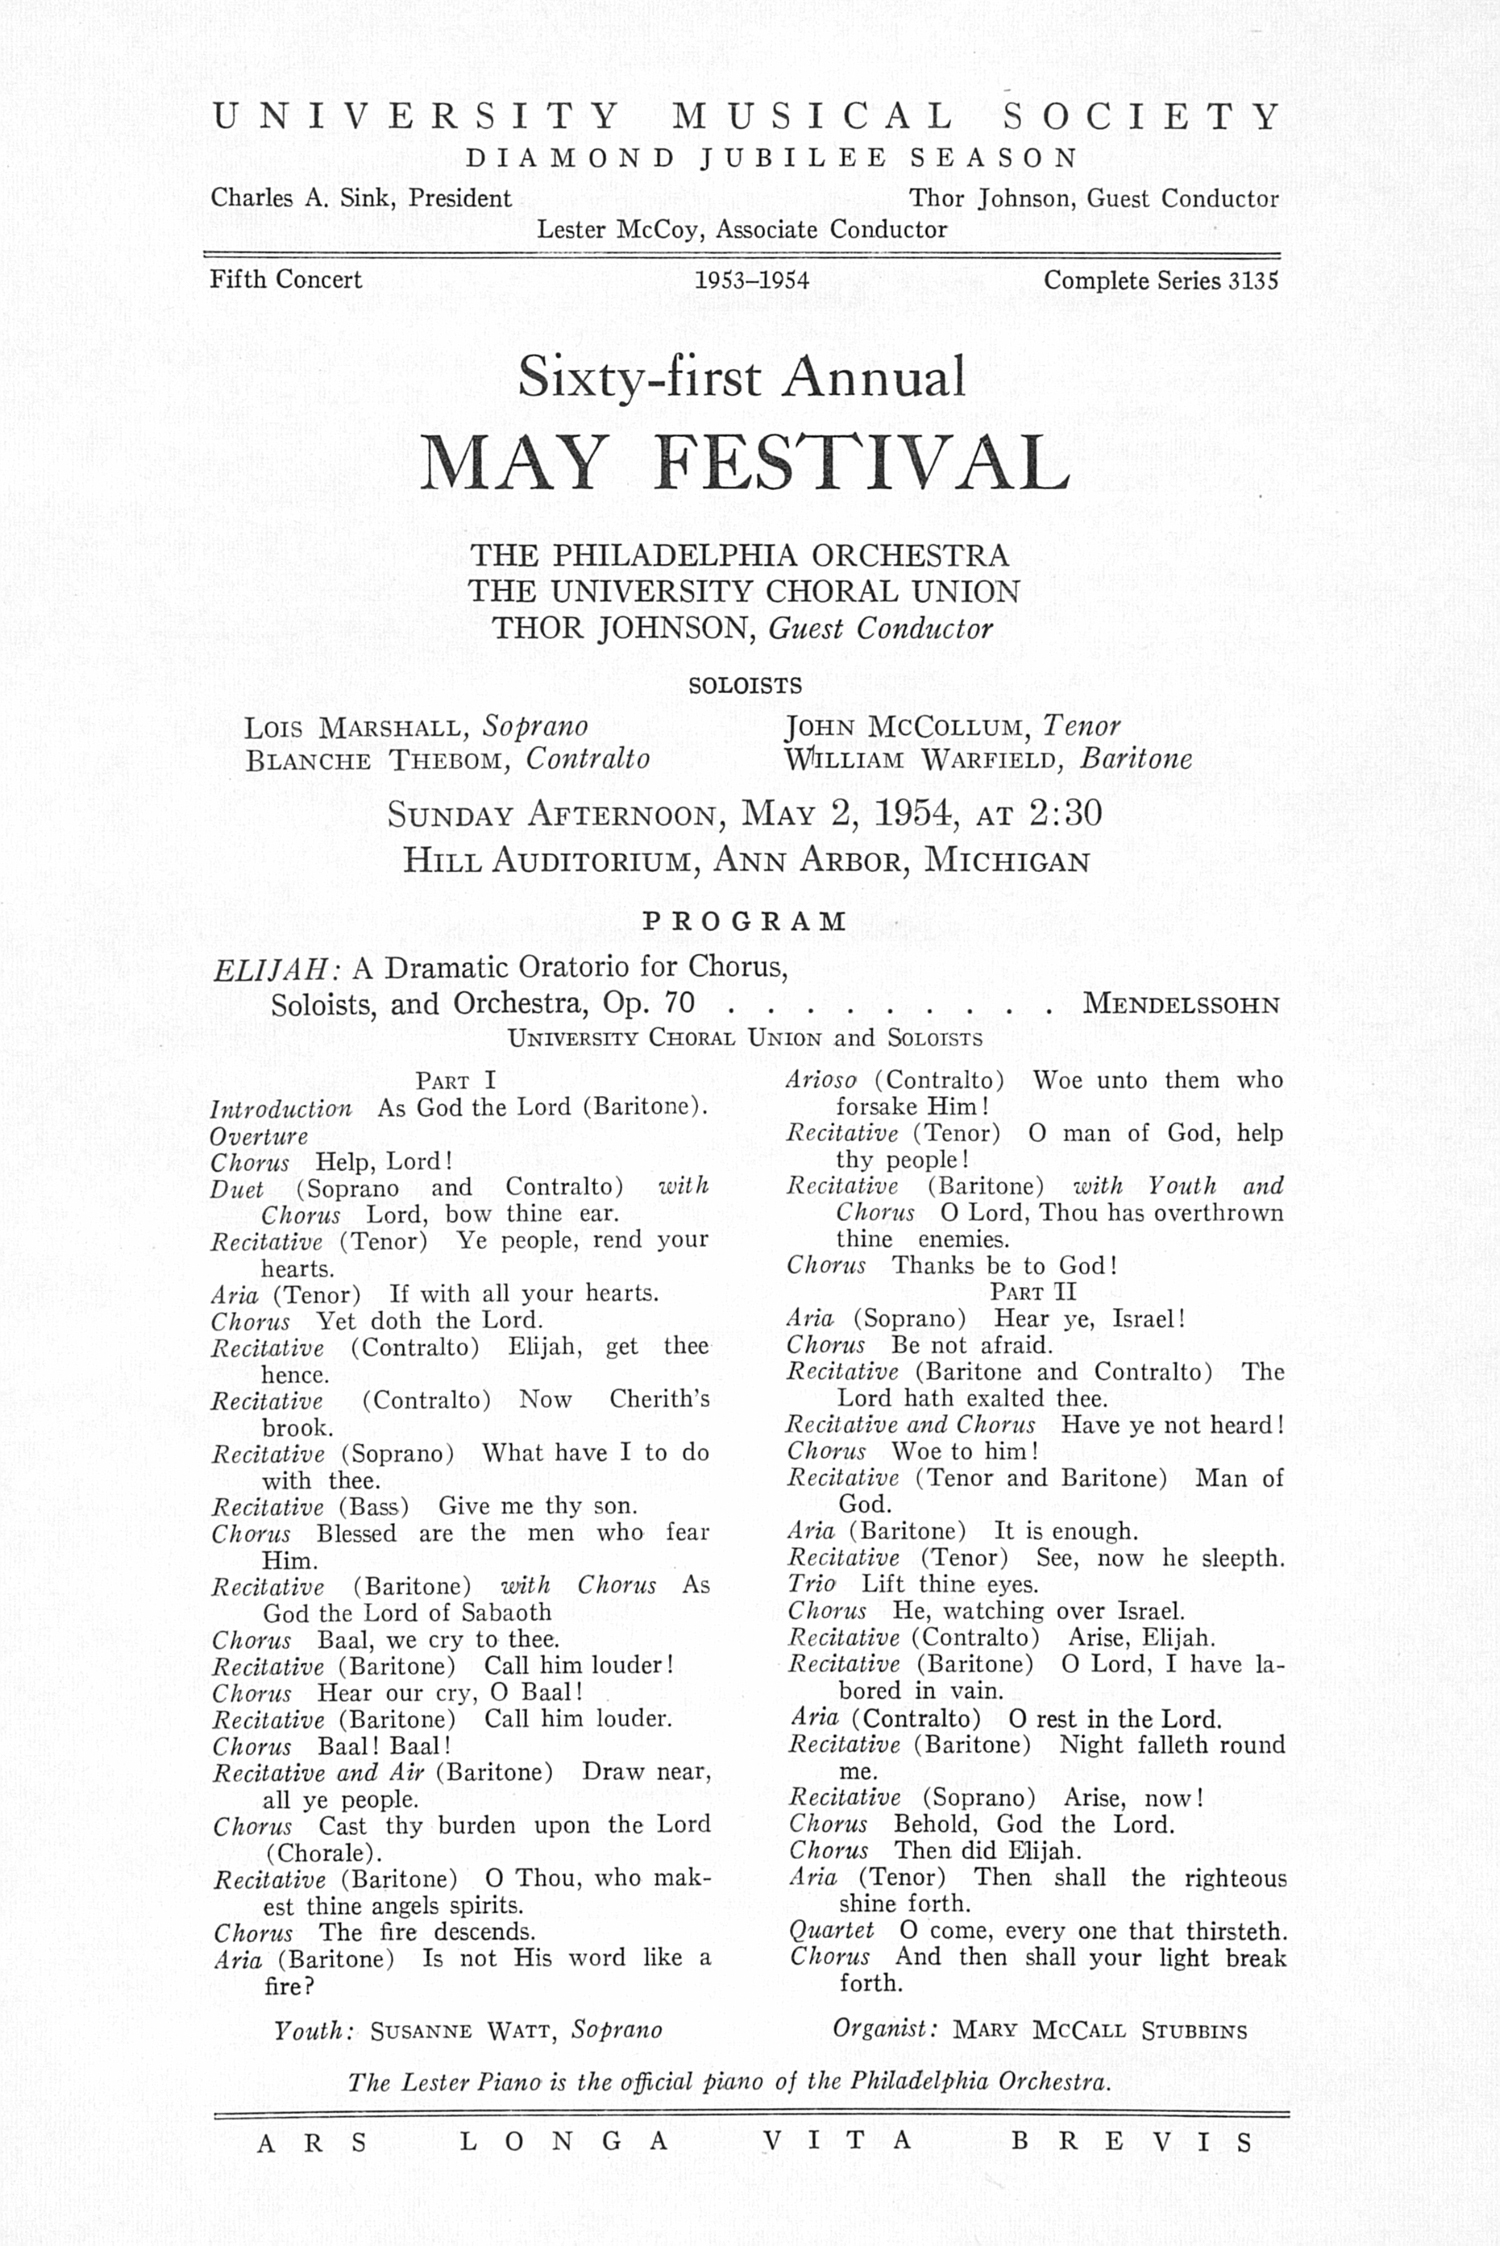 UMS Concert Program, May 2, 1954: Sixty-first Annual May Festival -- The Philadelphia Orchestra image